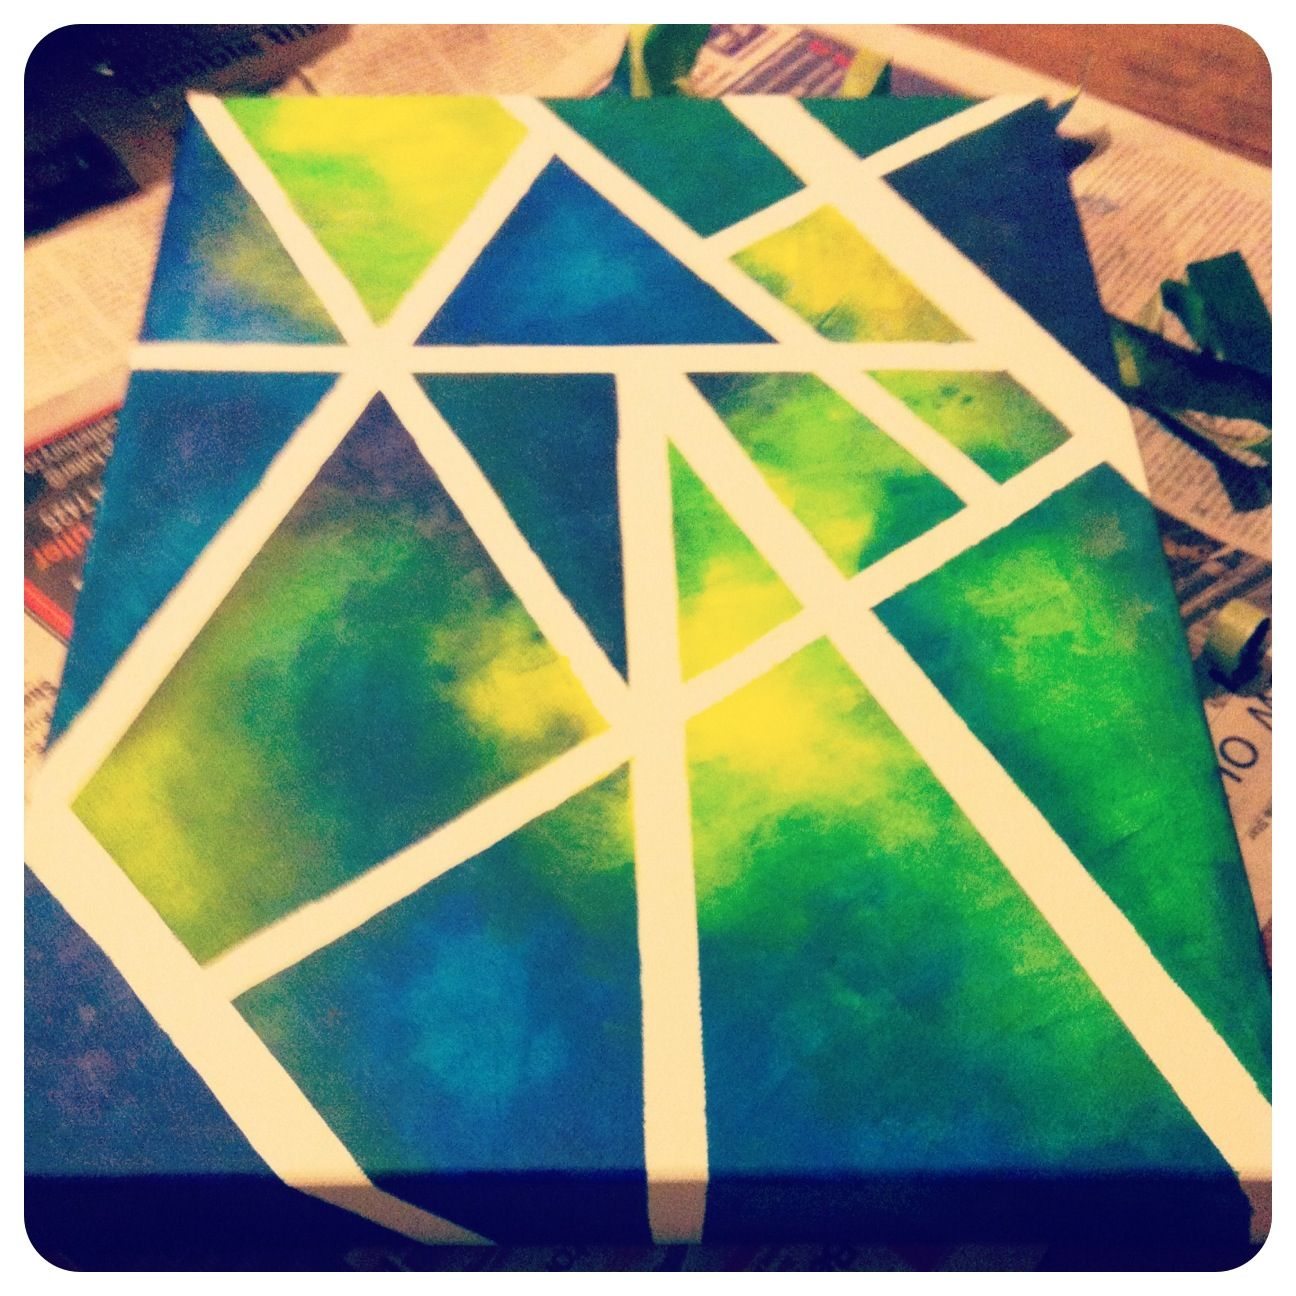 10 cool canvas painting ideas awesome canvas painting ideas with - Easy Canvas Art Using Sponges And Masking Tape Diy Art